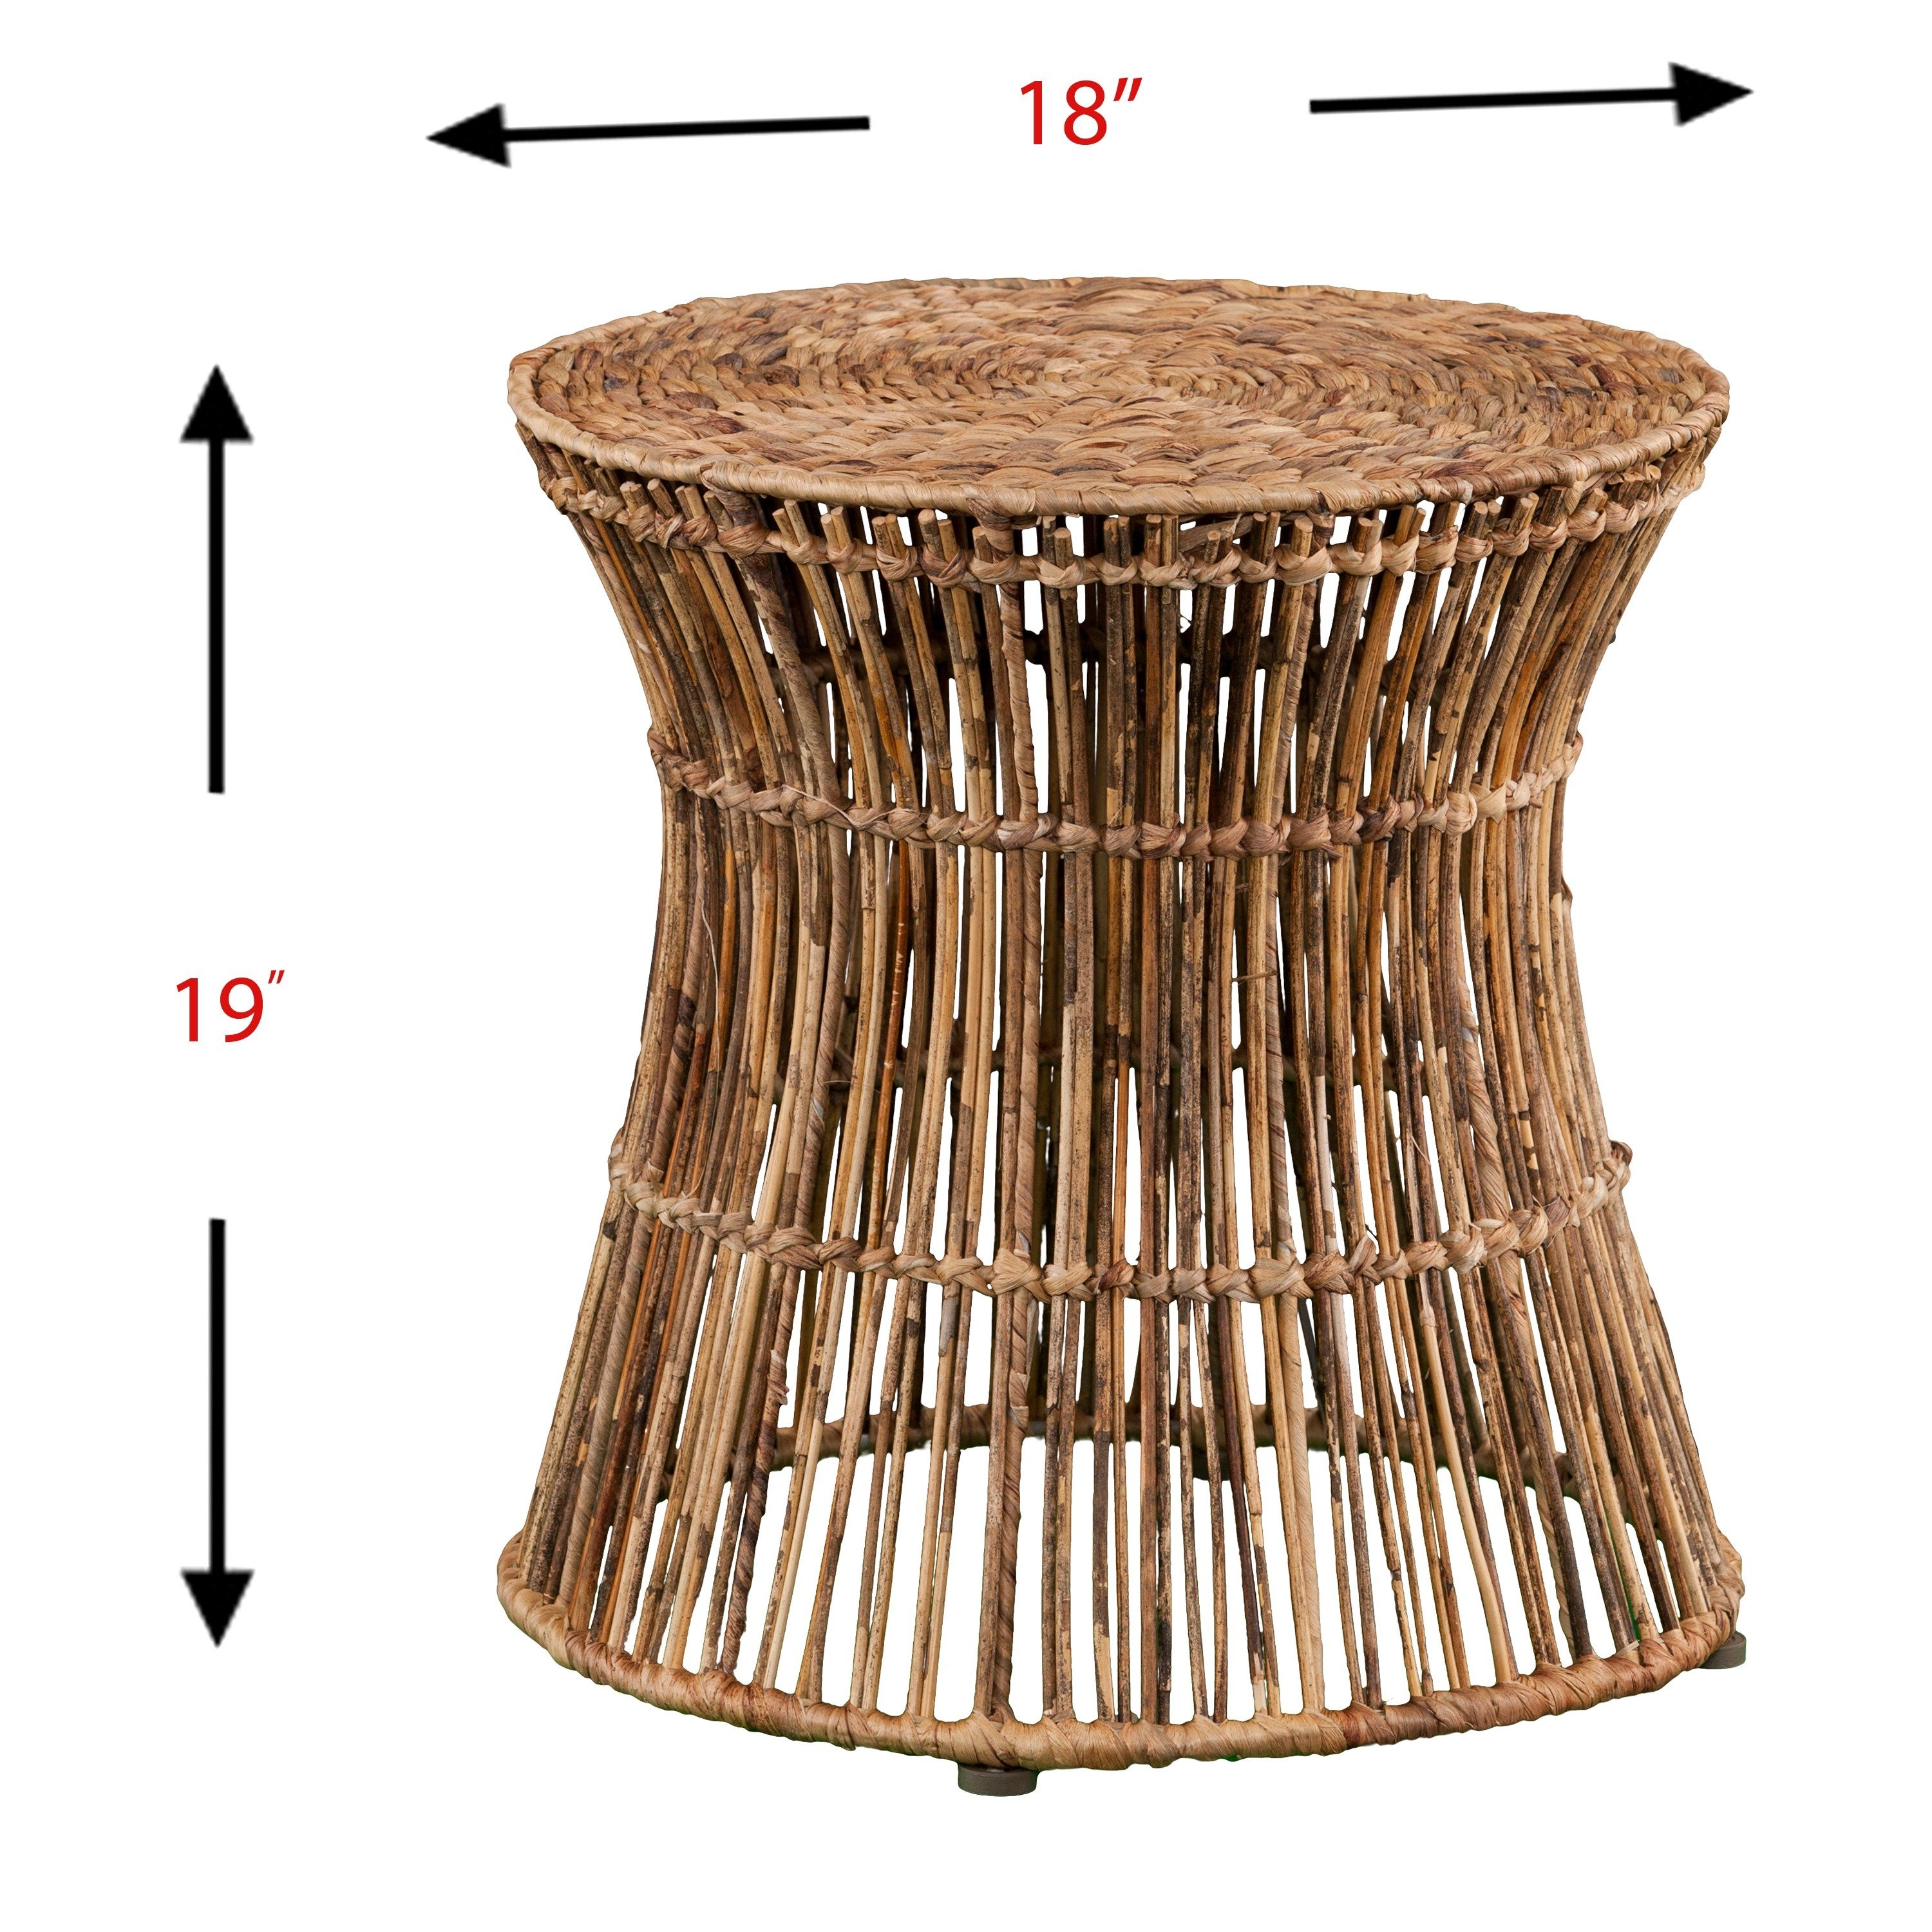 holly martin ocala hyacinth accent table stool round cardboard free shipping today ashley furniture cocktail tables tall nightstand lamps berg clearance bedding stone top coffee